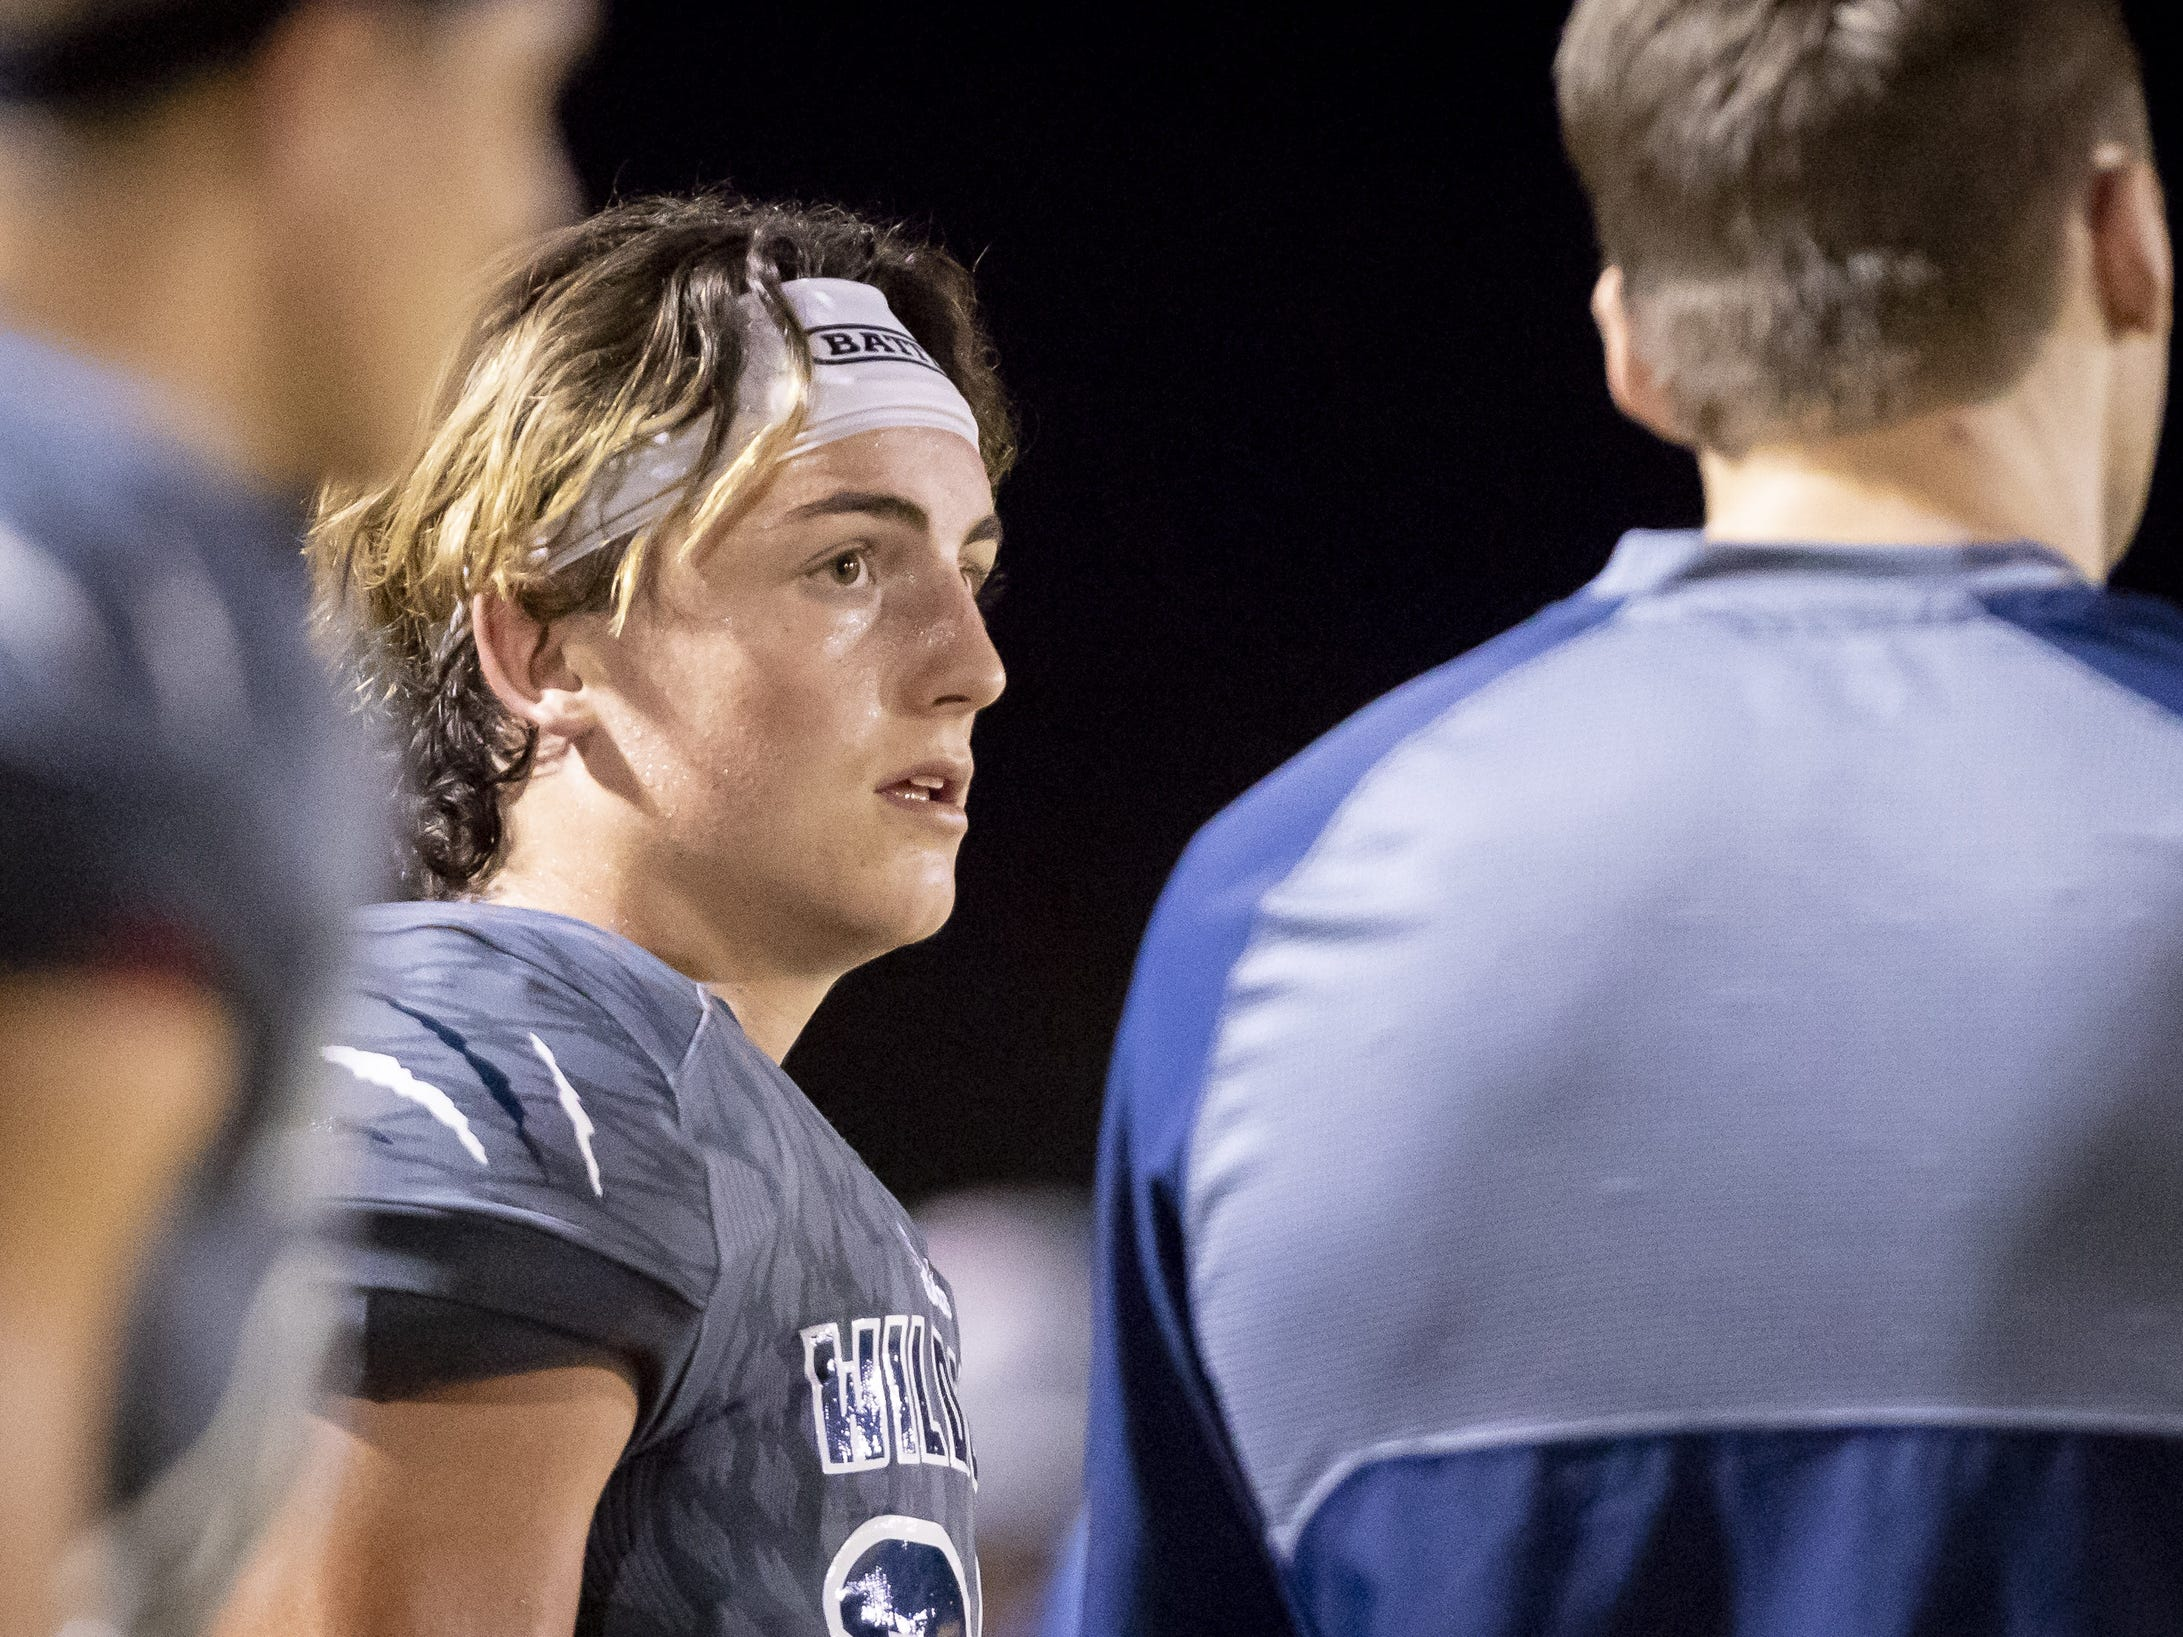 Senior strong safety Brandon Cook (25) of the Willow Canyon Wildcats looks on during the game against the Shadow Ridge Stallions at Willow Canyon High School on Friday, September 7, 2018 in Surprise, Arizona. #azhsfb